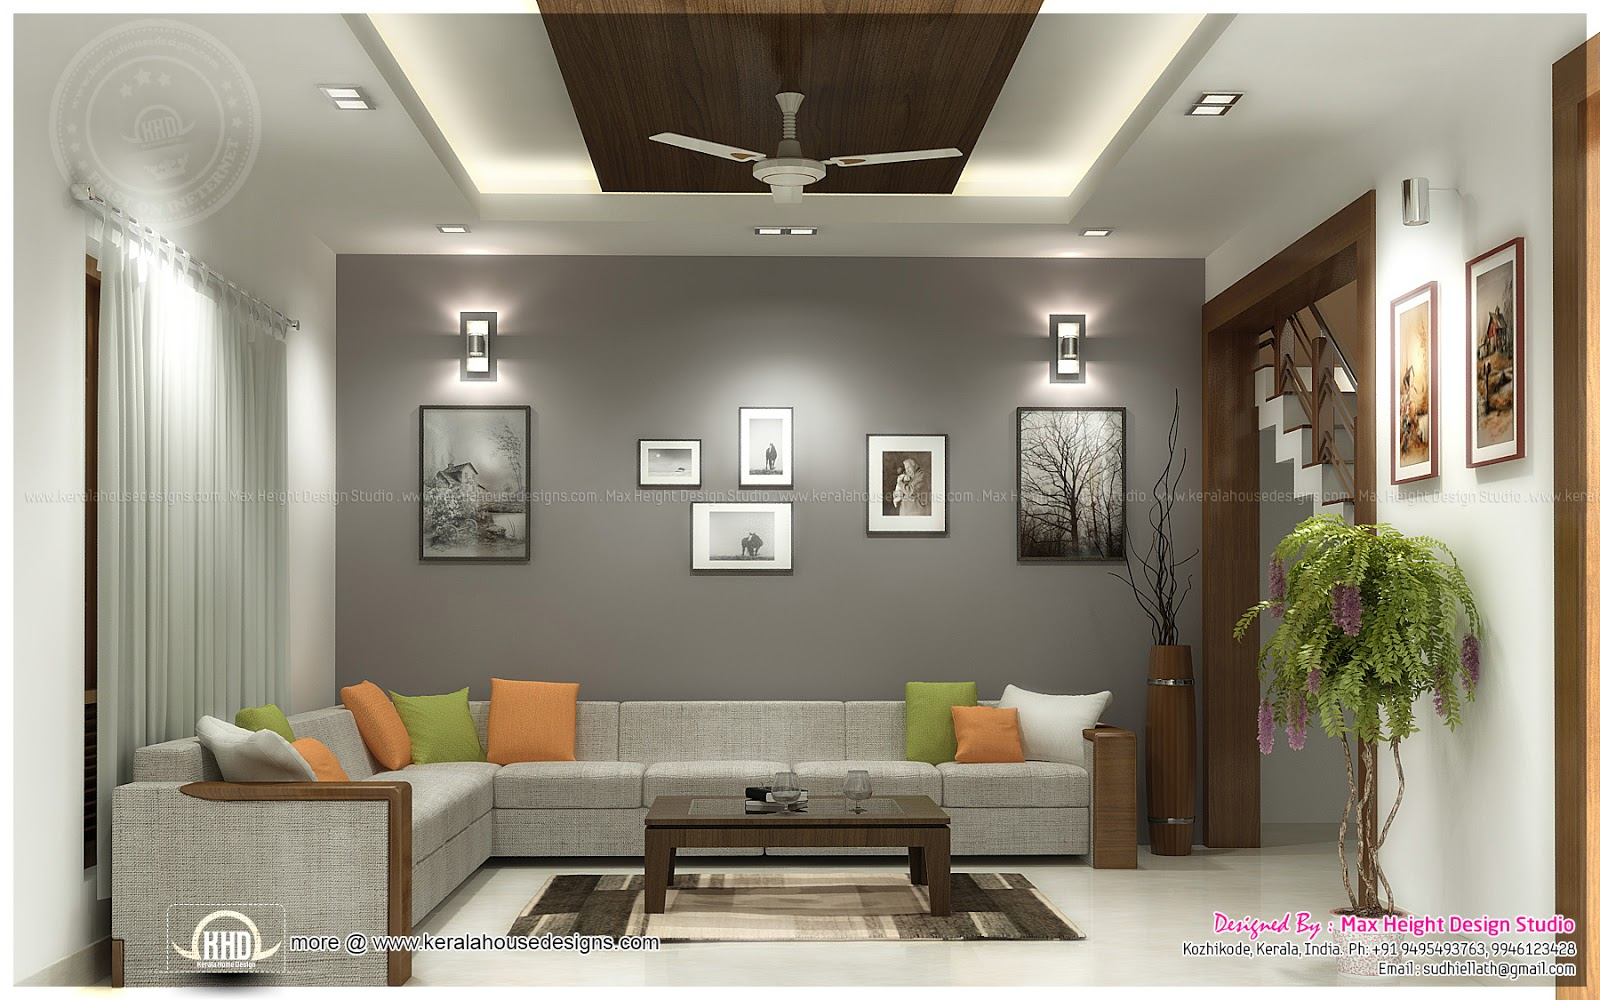 Beautiful interior ideas for home kerala home design and for I need an interior design for my home